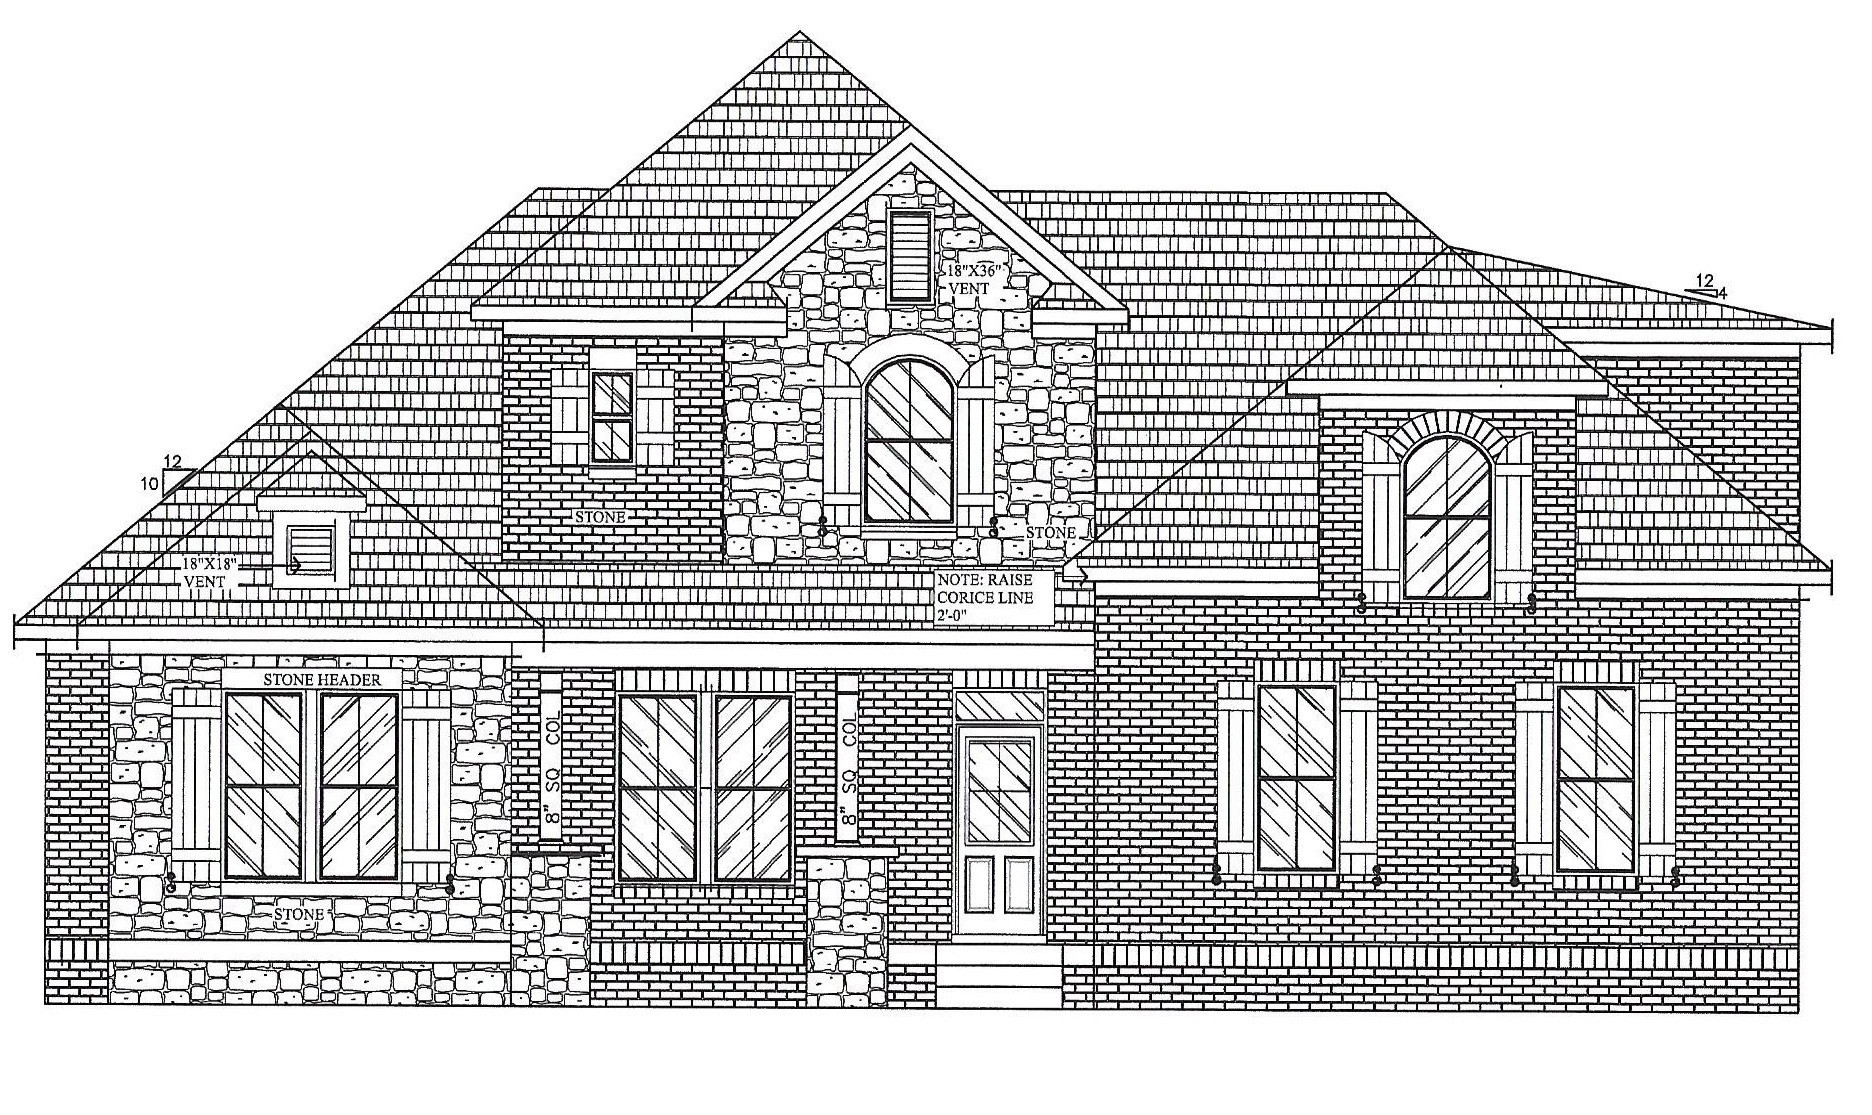 NEW ALL BRICK COMMUNITY - 3 CAR SIDE LOAD GARAGE, 3 BEDROOMS ON THE MAIN FL~ CUSTOM CABINETS THRU OUT, HARDWOOD FLOORS, GRANITE IN KIT&BTHS,  OPEN LIVING FLOOR PLAN, COVERED BACK PORCH - FINISHED BONUS, 4th BEDROOM AND FULL BATH UP-IRRIGATION, TANKLESS WATER HEATER.